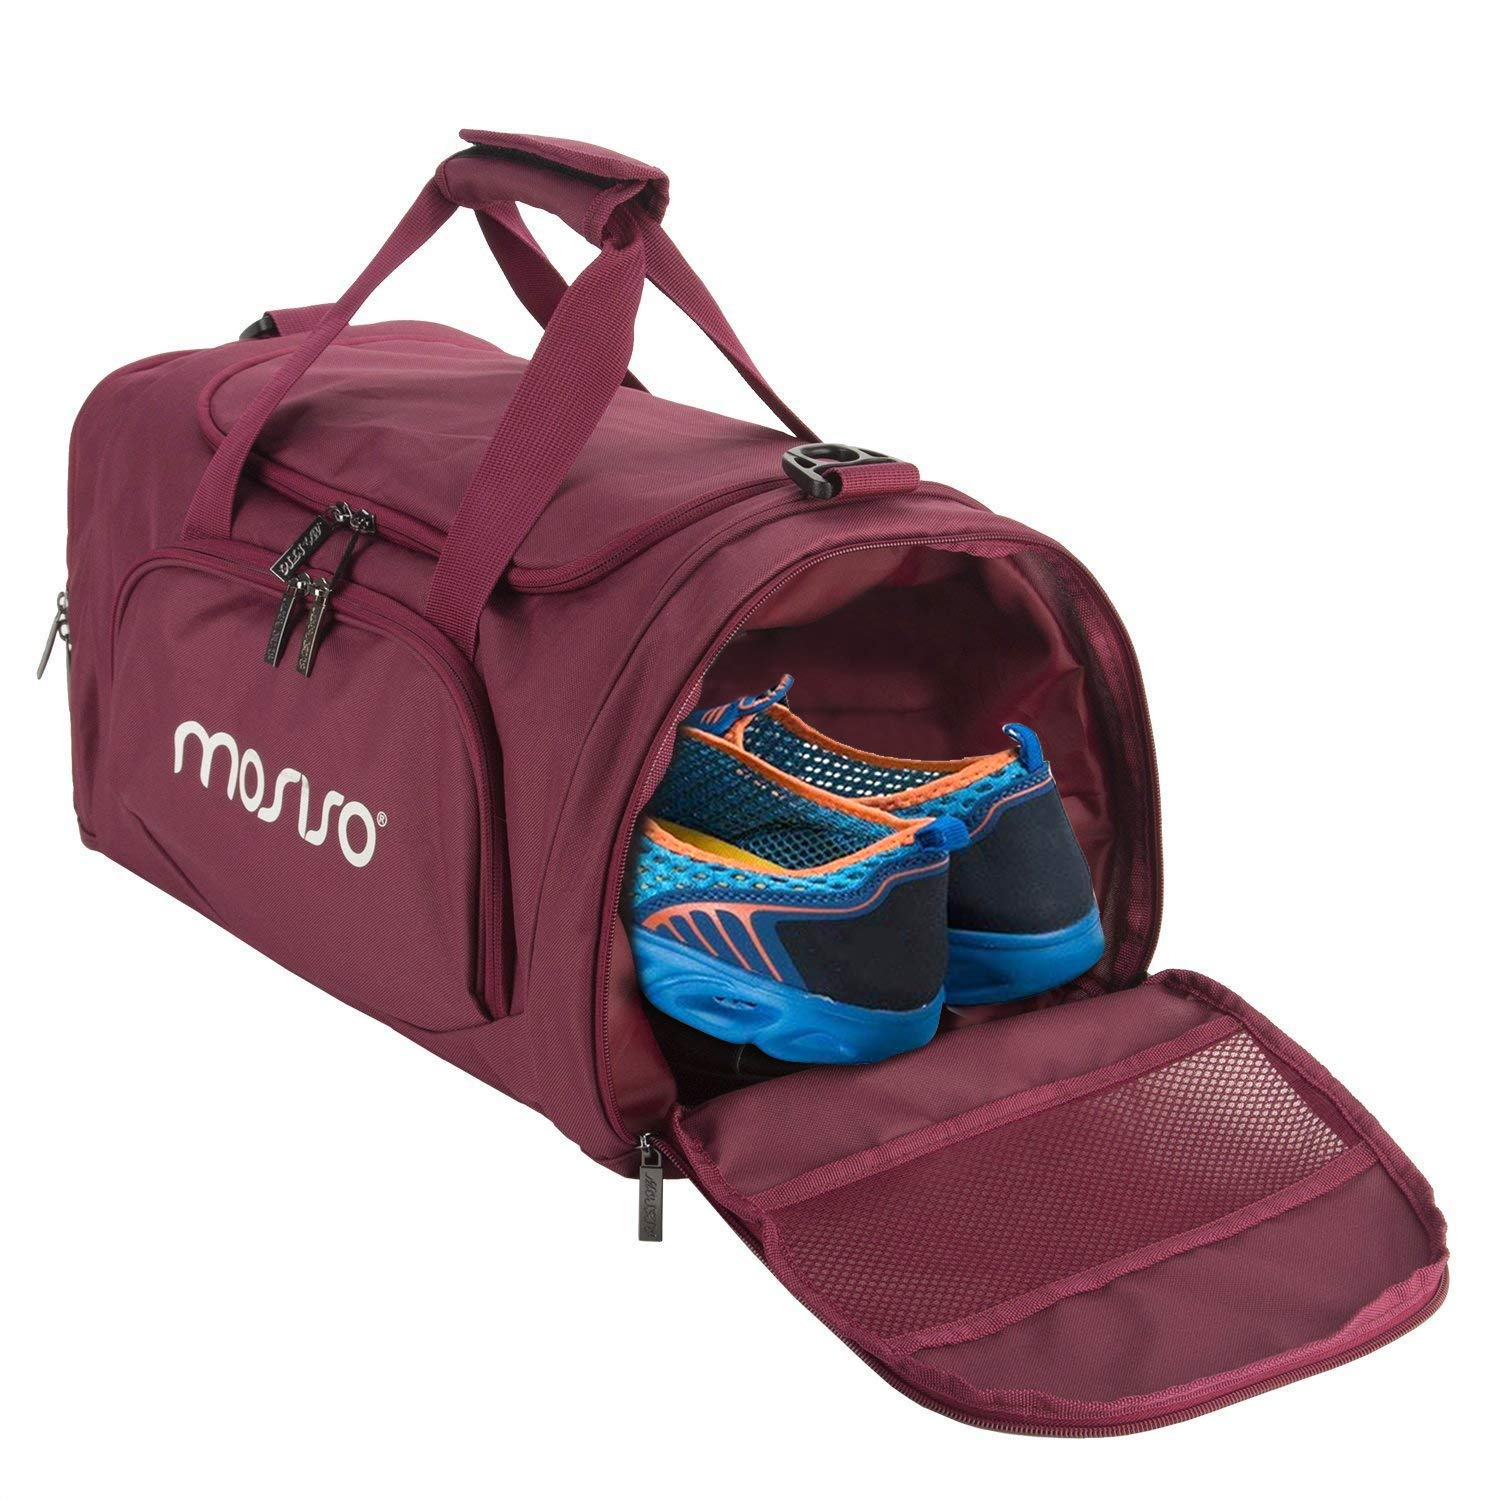 1da168ef8f Mosiso Polyester Fabric Foldable Travel Luggage Multifunctional Duffels  Lightweight Shoulder for Men Ladies Gym Bags